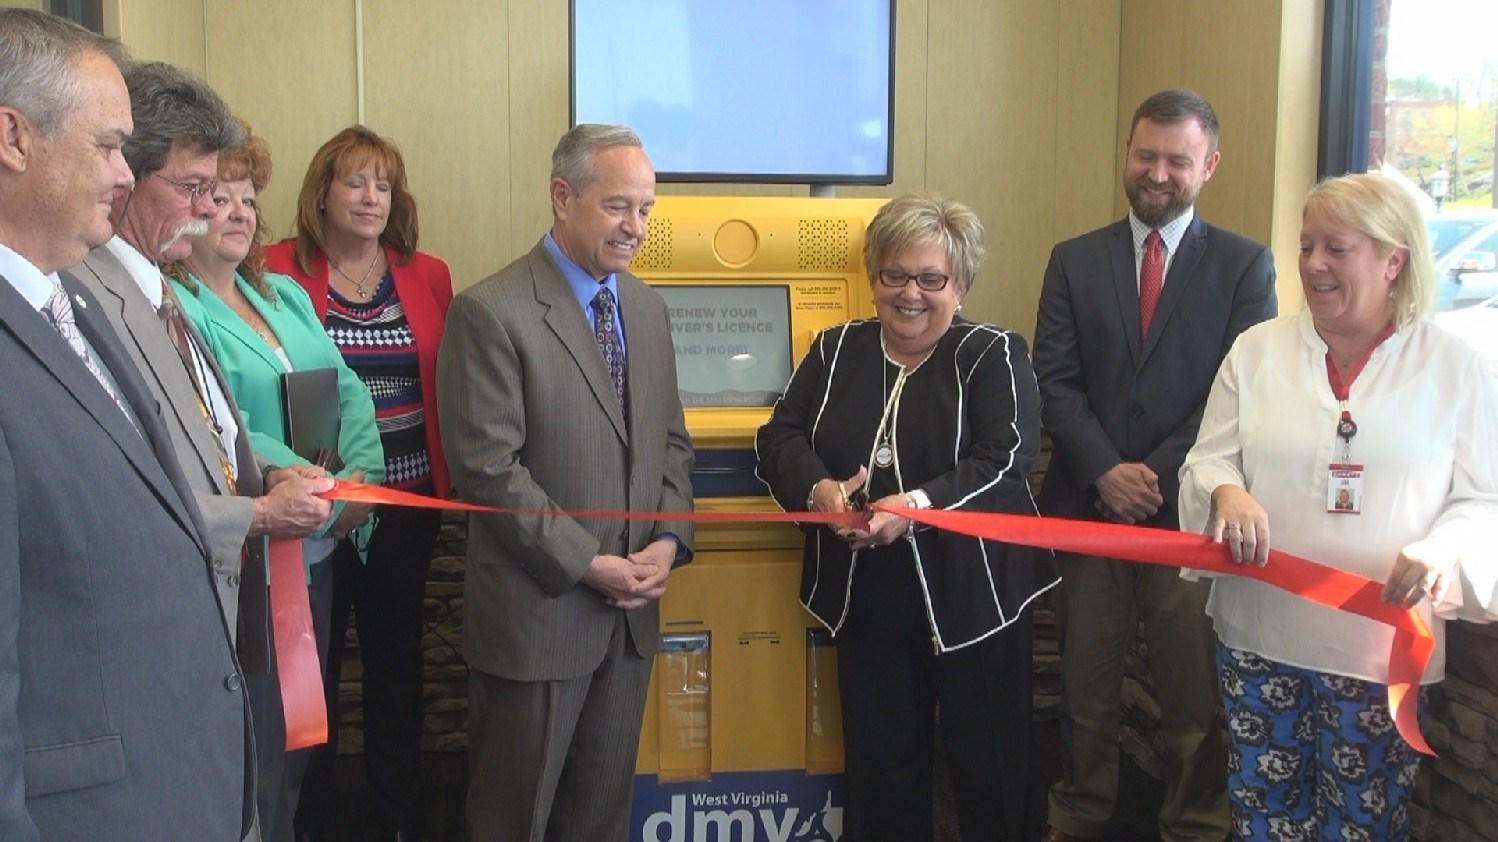 DMV Kiosk Allows Customers to 'Skip the Line'